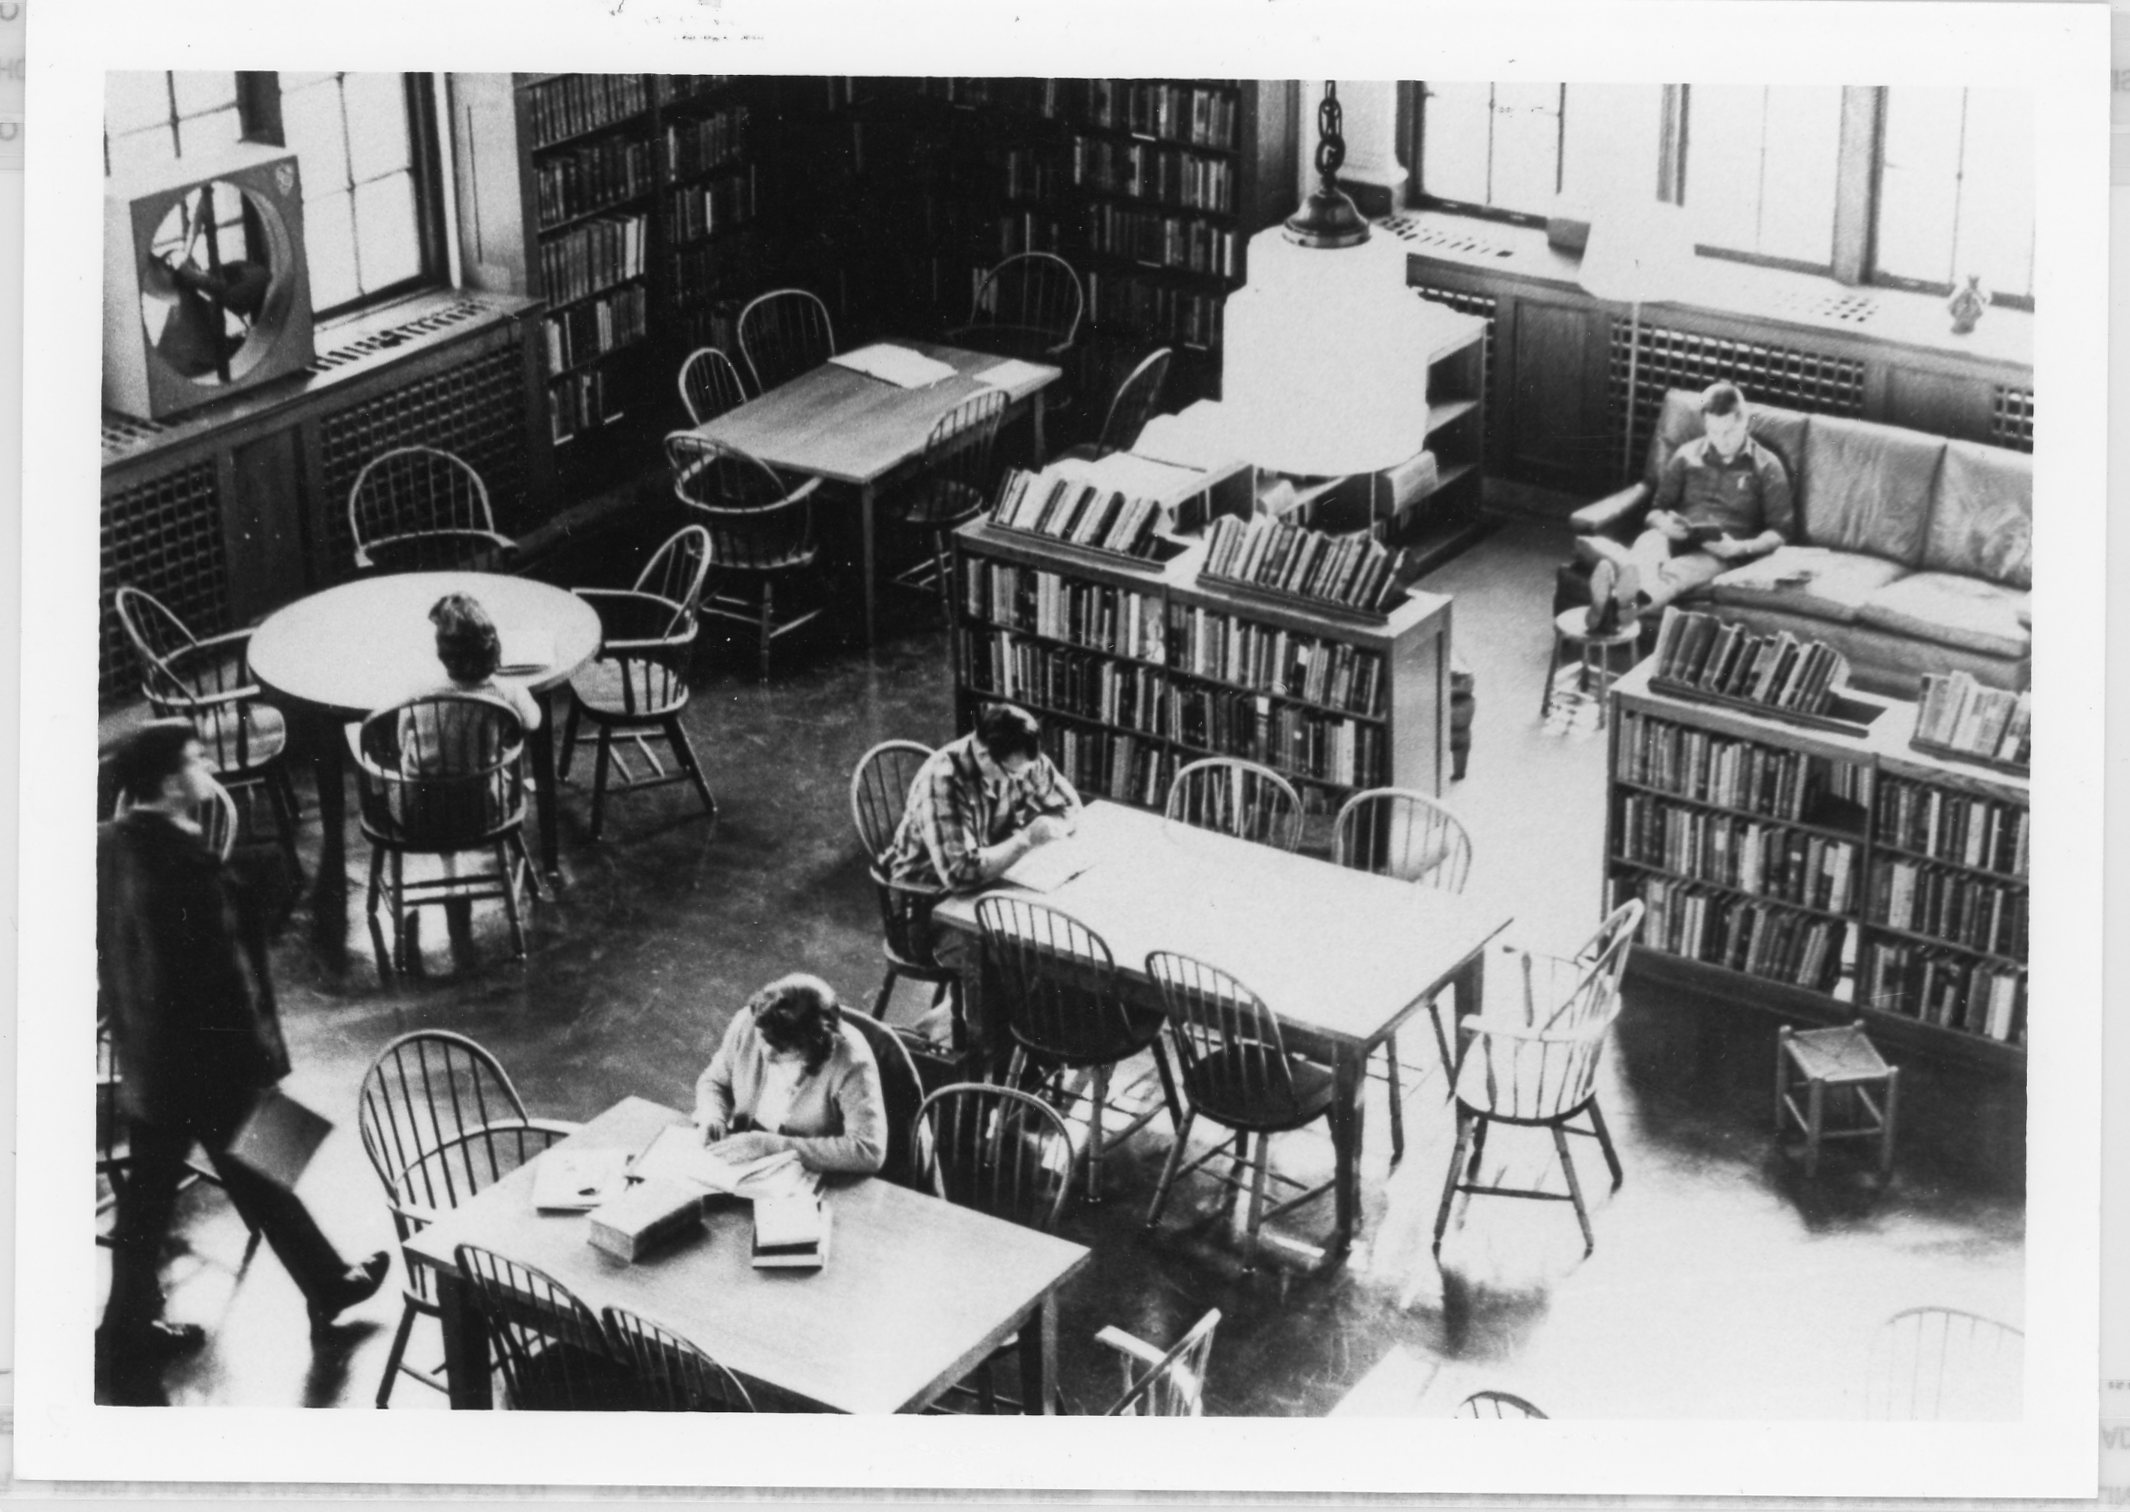 Inside Wills Hall as a library, prior to the creation of Carmichael Library.